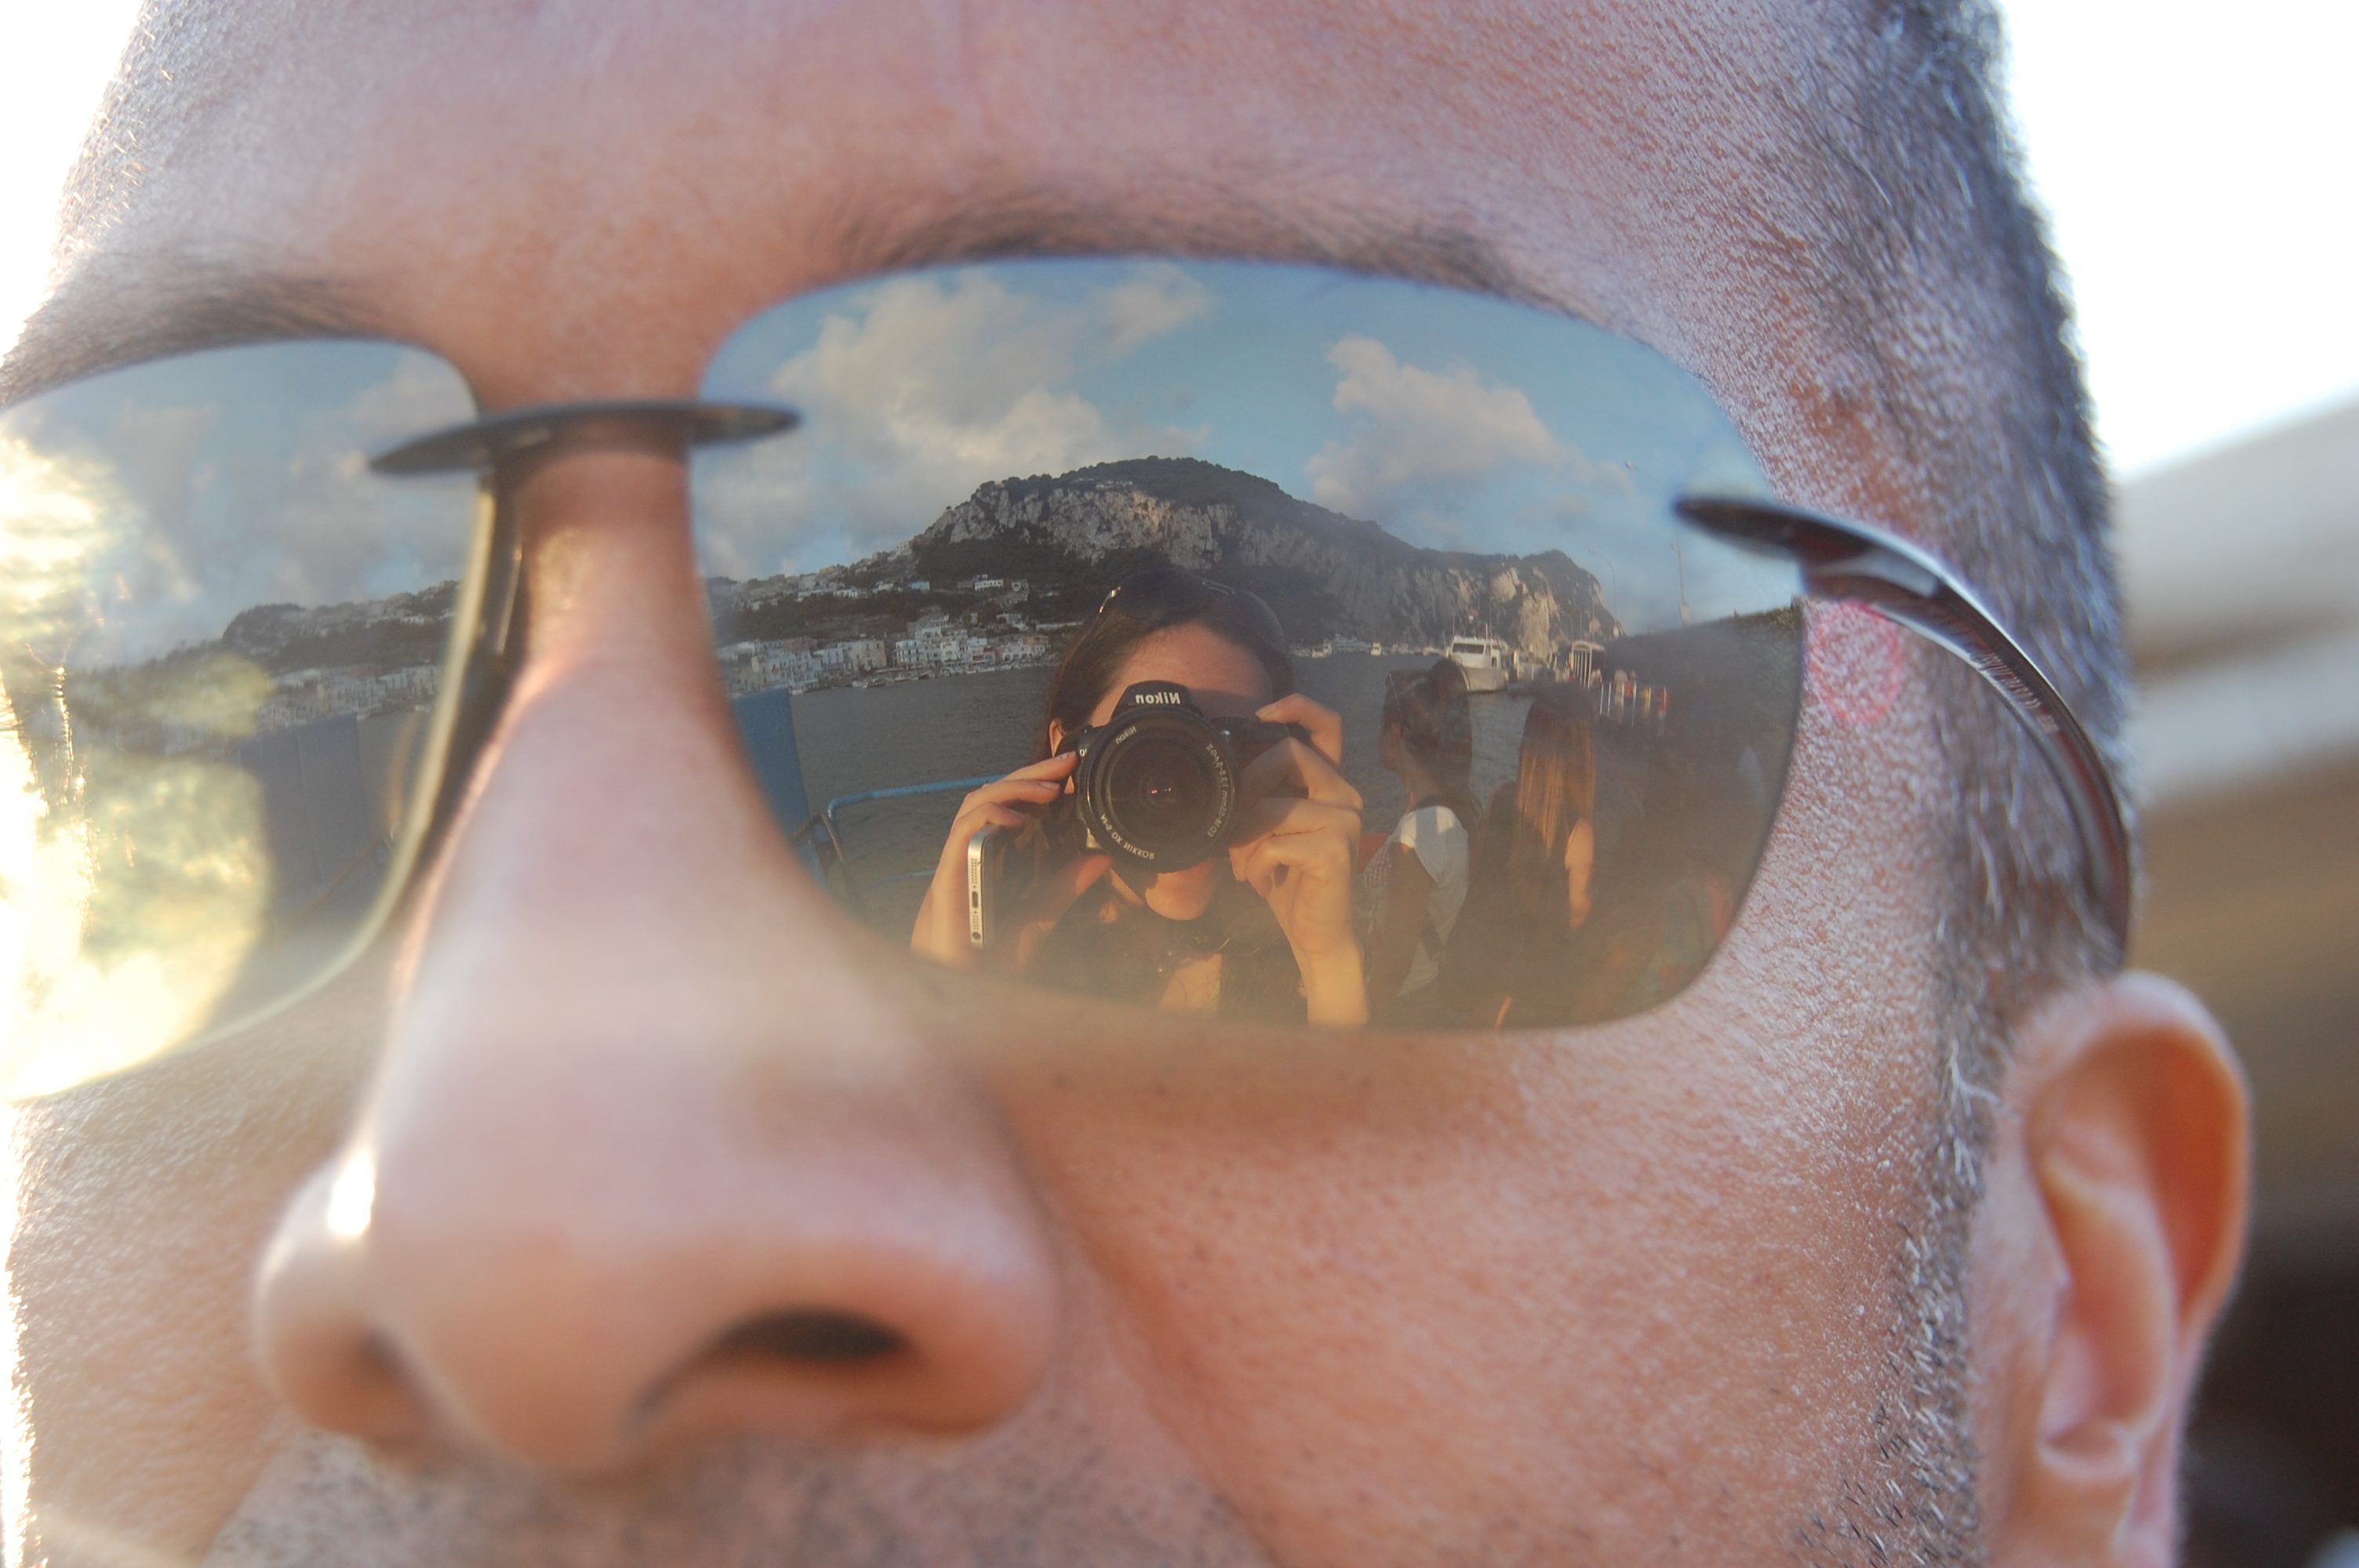 Name the Italian topography in his Maui Jims!